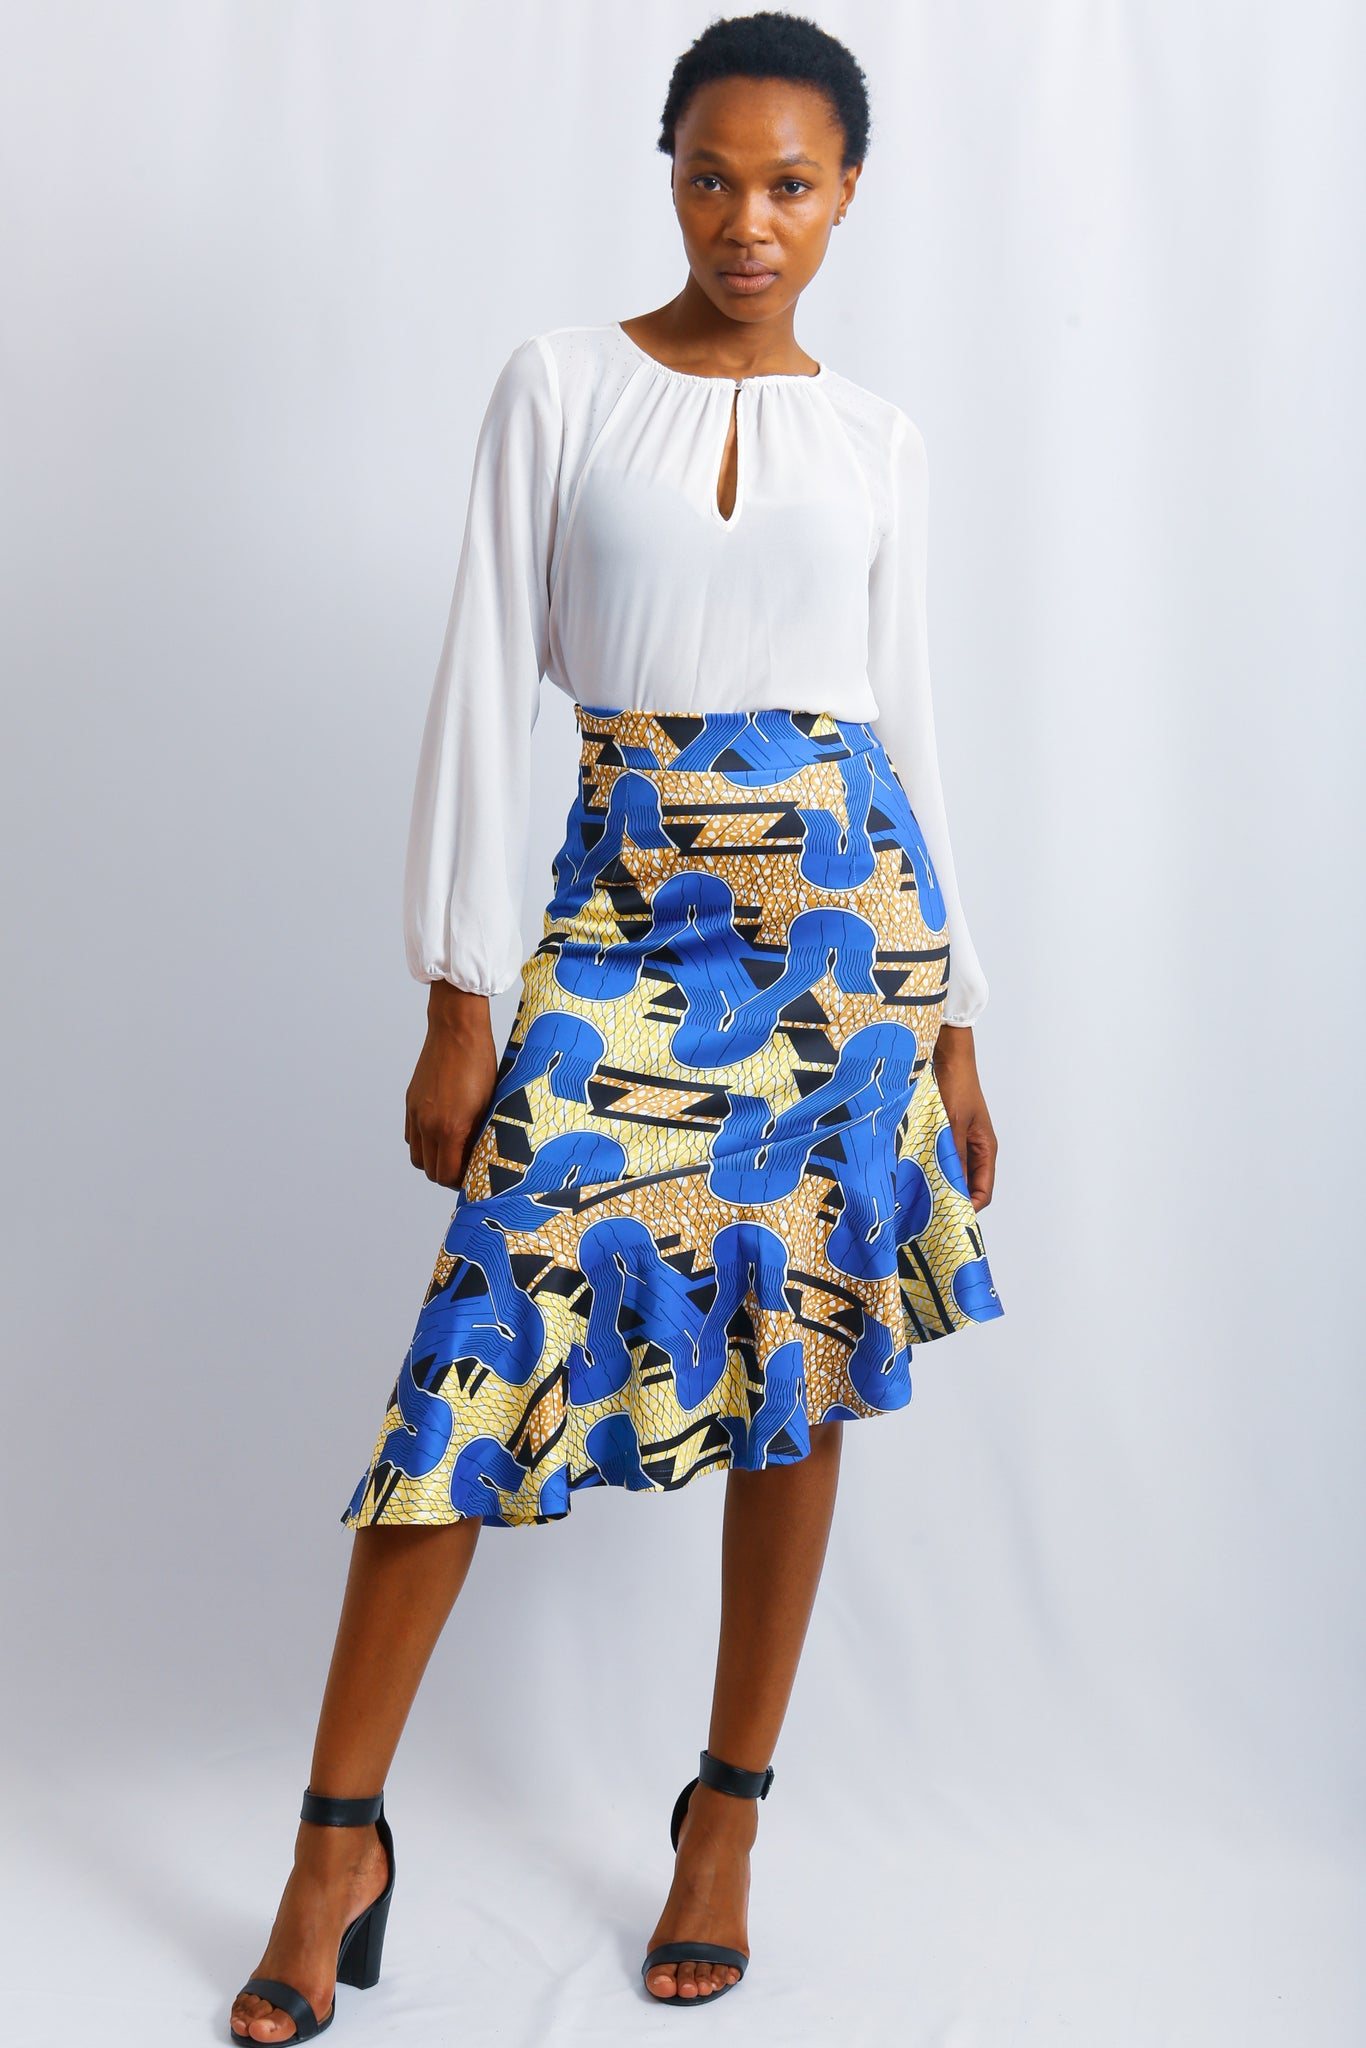 Scuba African Print skirt, stretching material, tight fit, asymmetric shaped  Navy, Yellow print